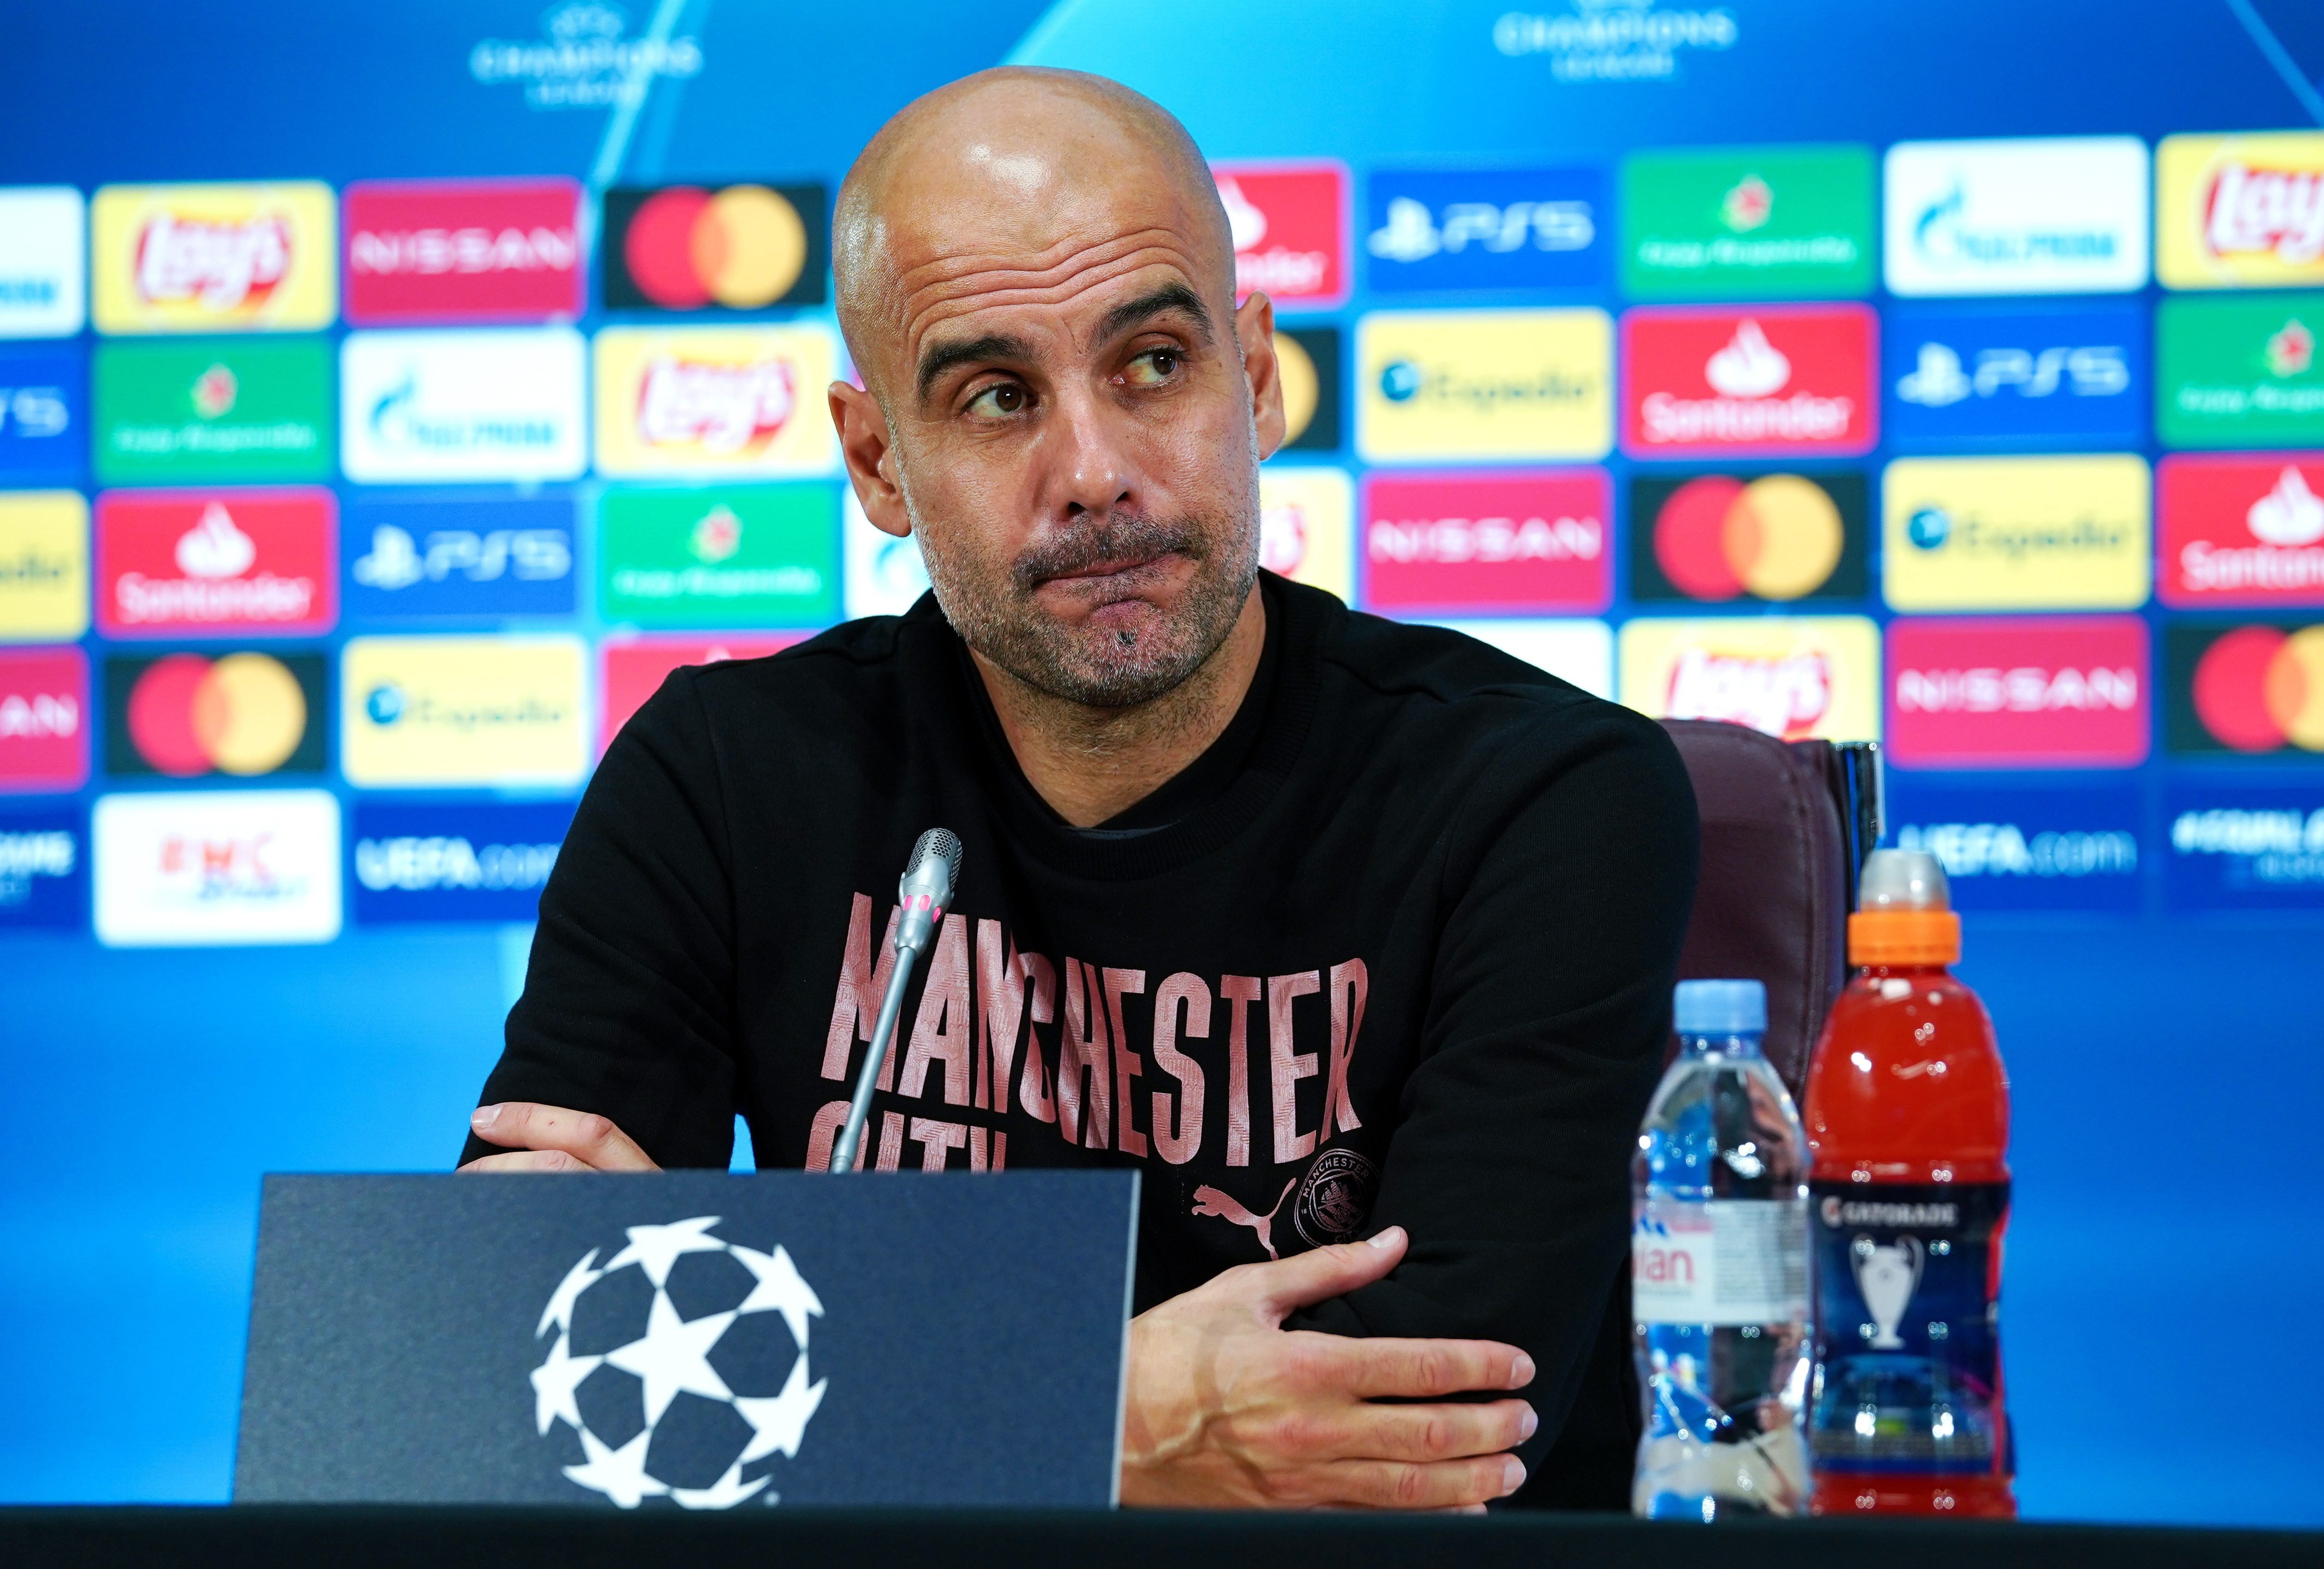 Pep Guardiola says Borussia Dortmund 'pay a lot of money' to agents ahead of Manchester City's Champions League clash with German club